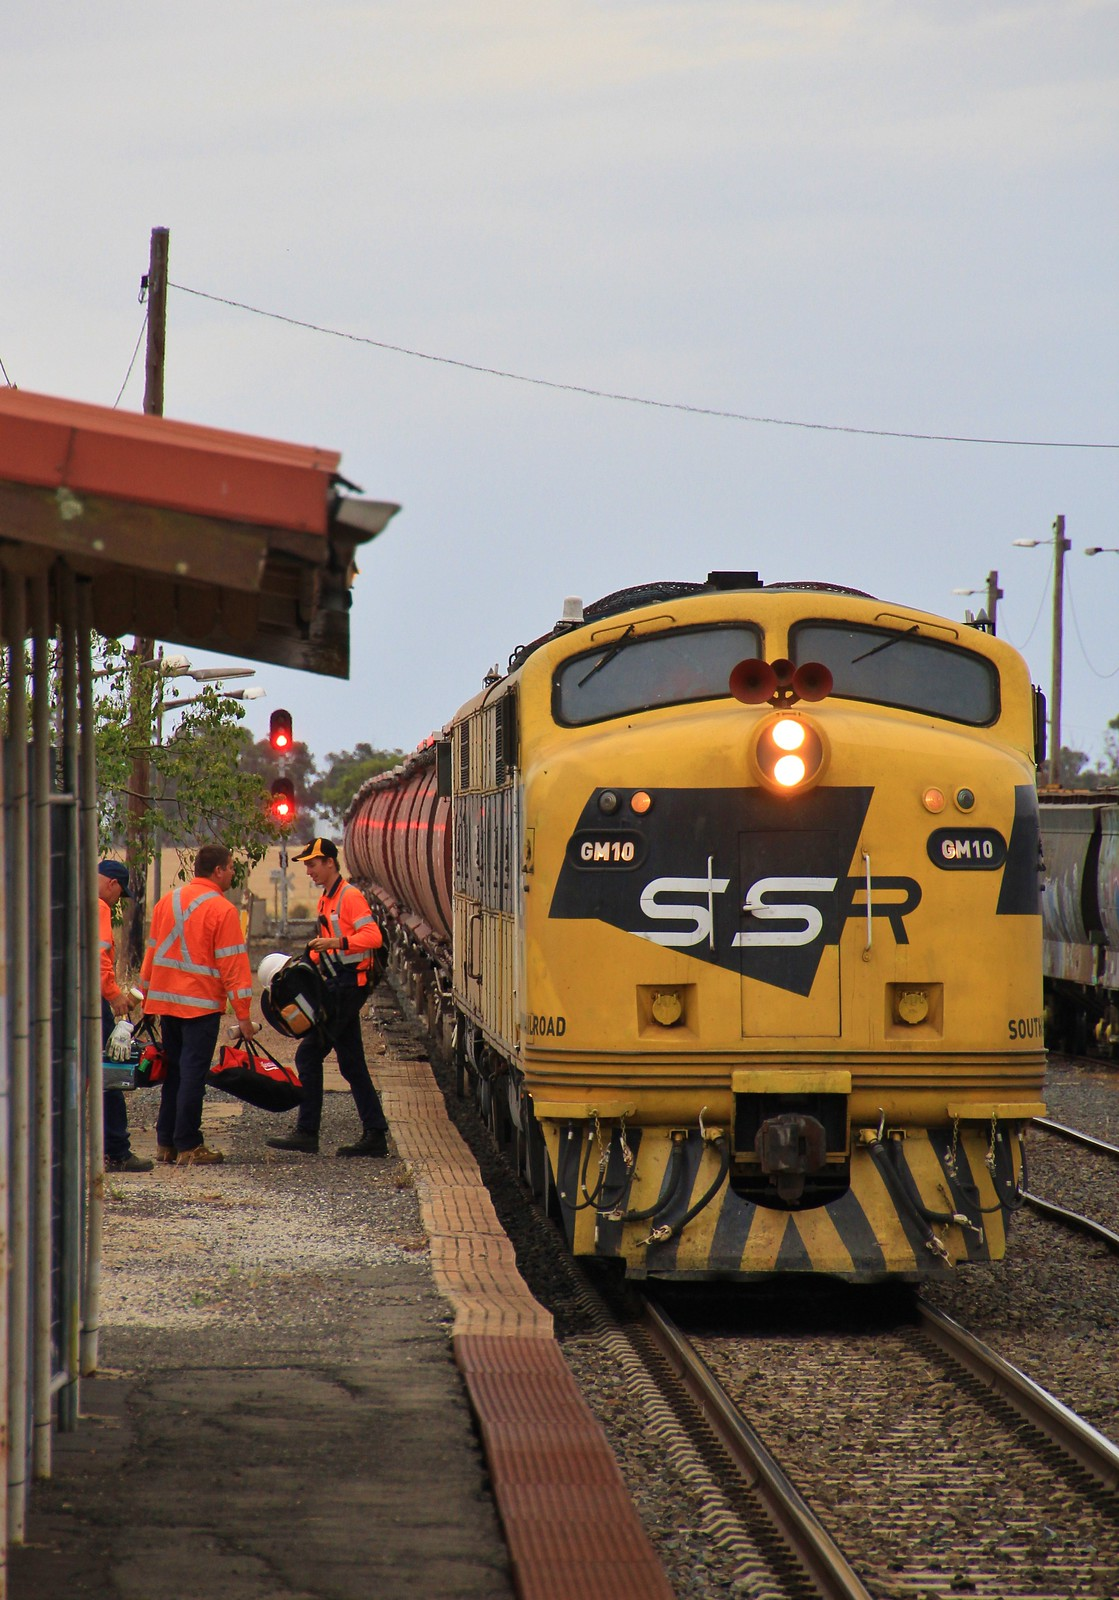 GM10 and GM22 stop at Murtoa station for a crew change before departing for the docks by bukk05